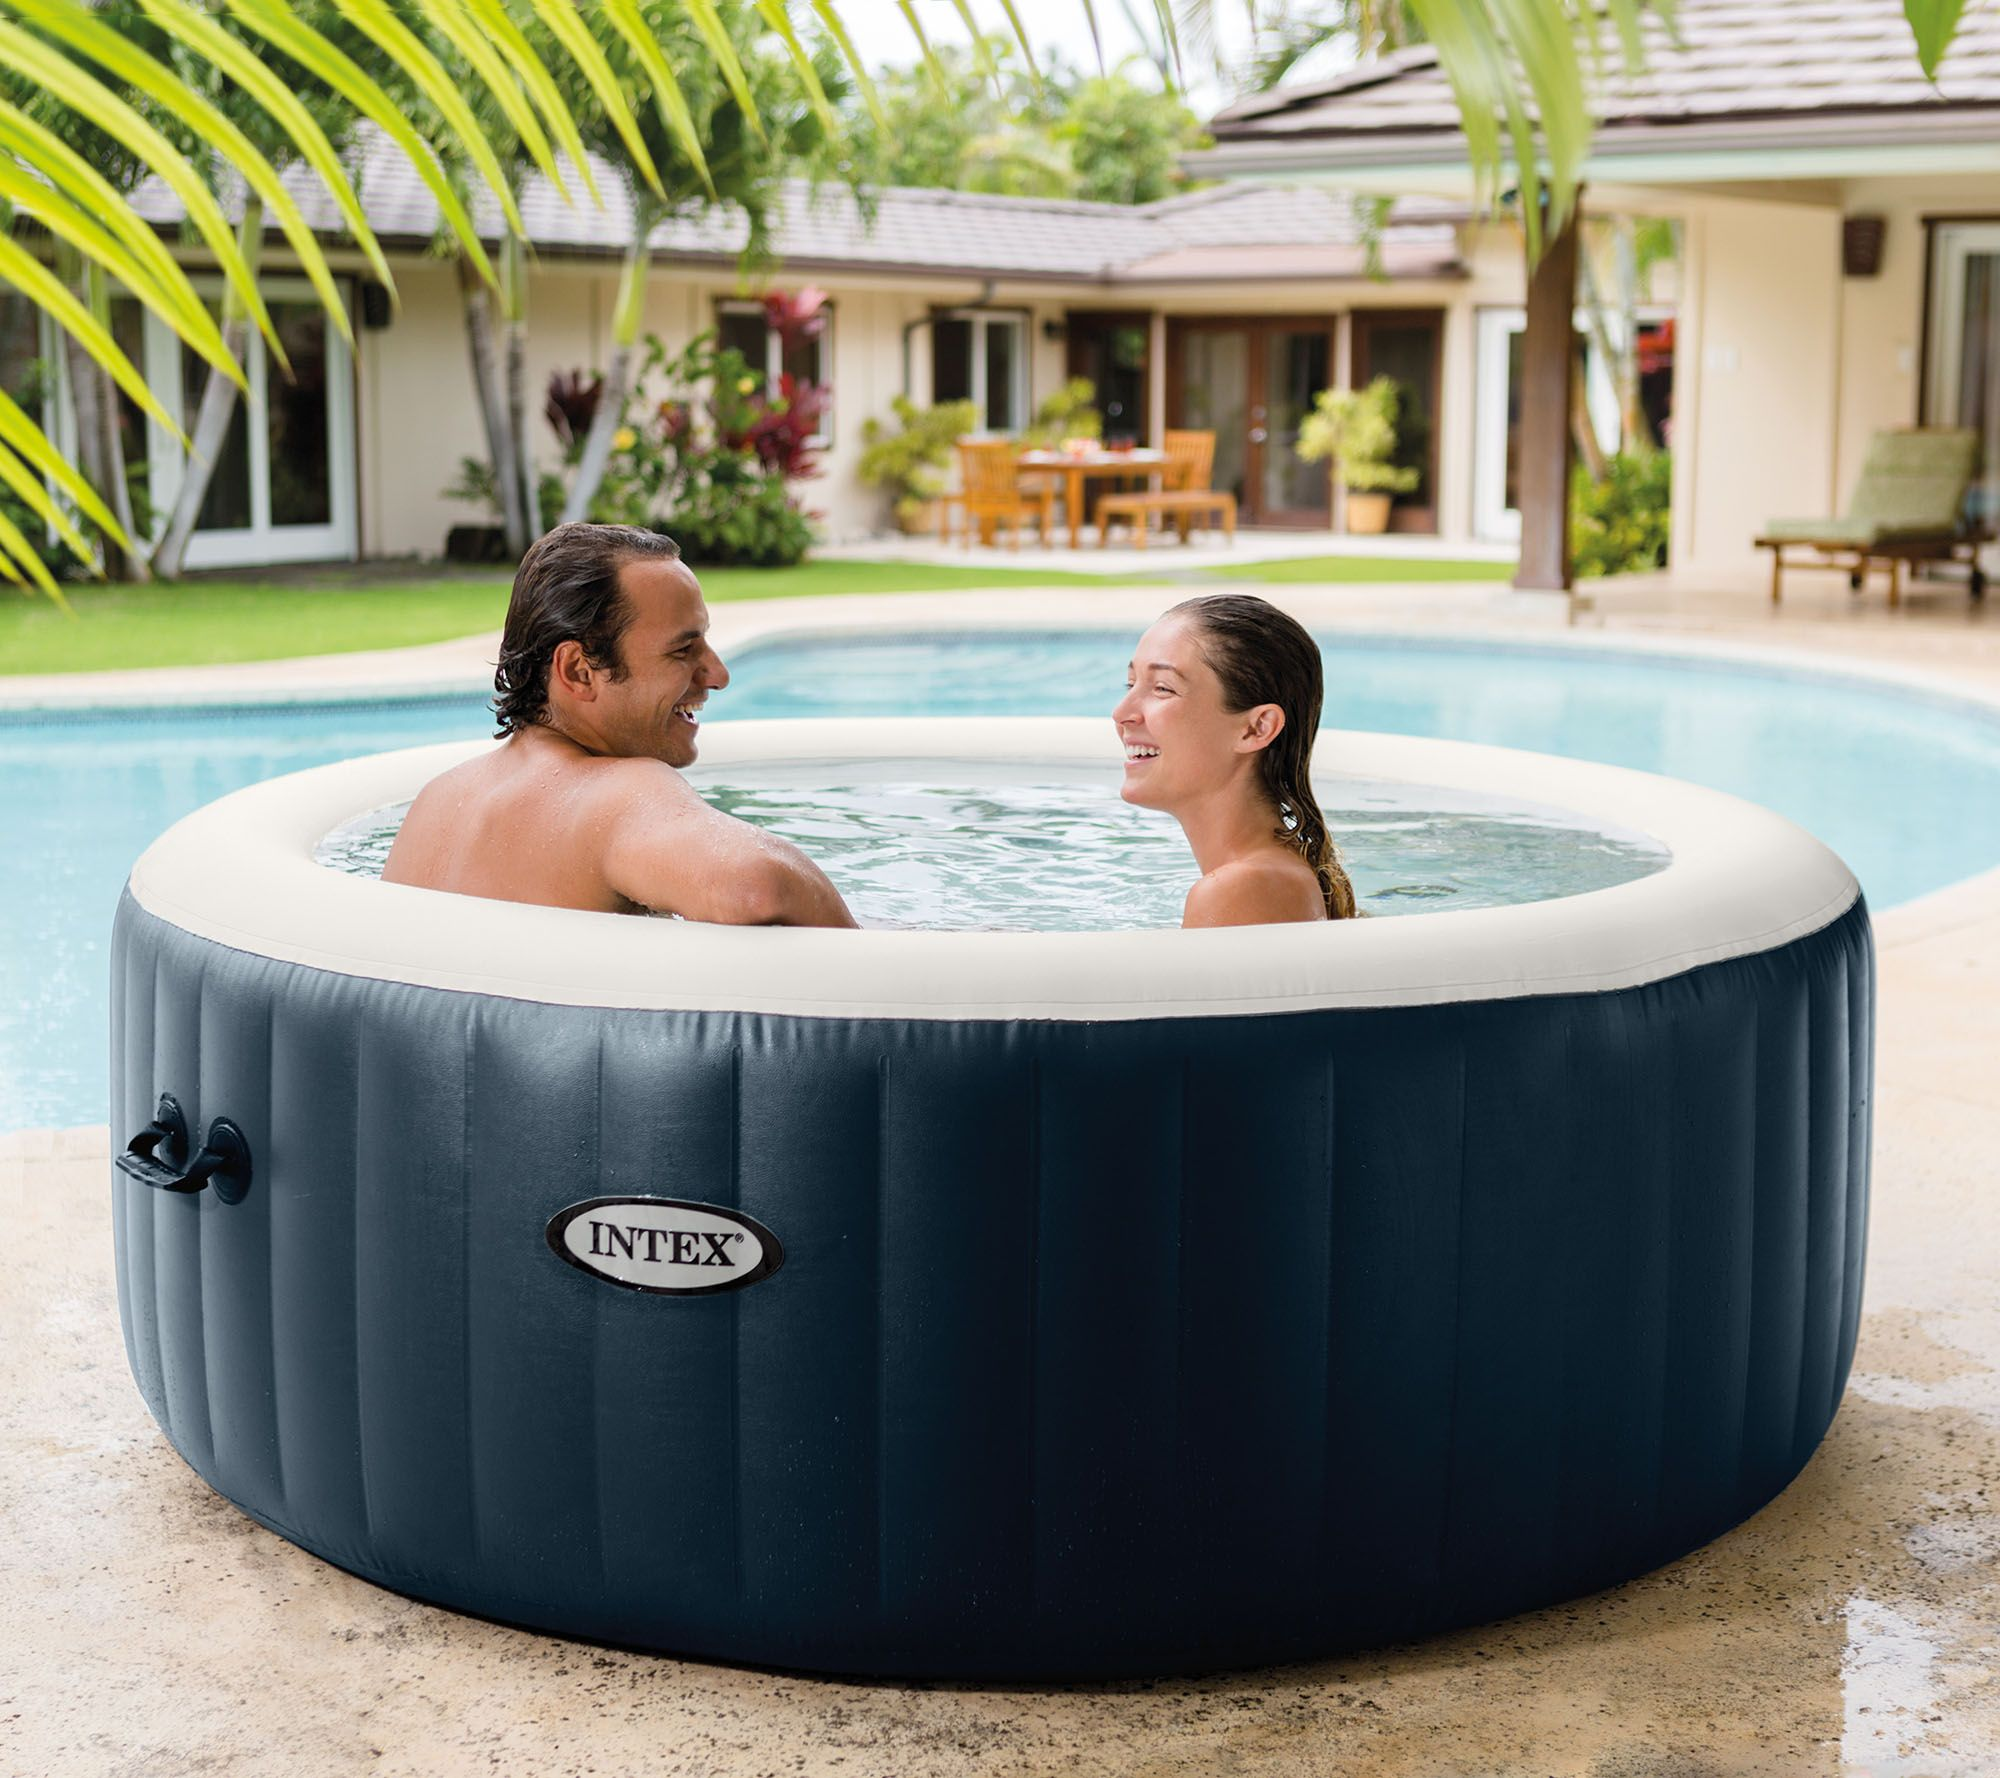 Hottub Led Verlichting Intex Pure Spa Portable Hot Tub W Headrests Extra Filters Qvc